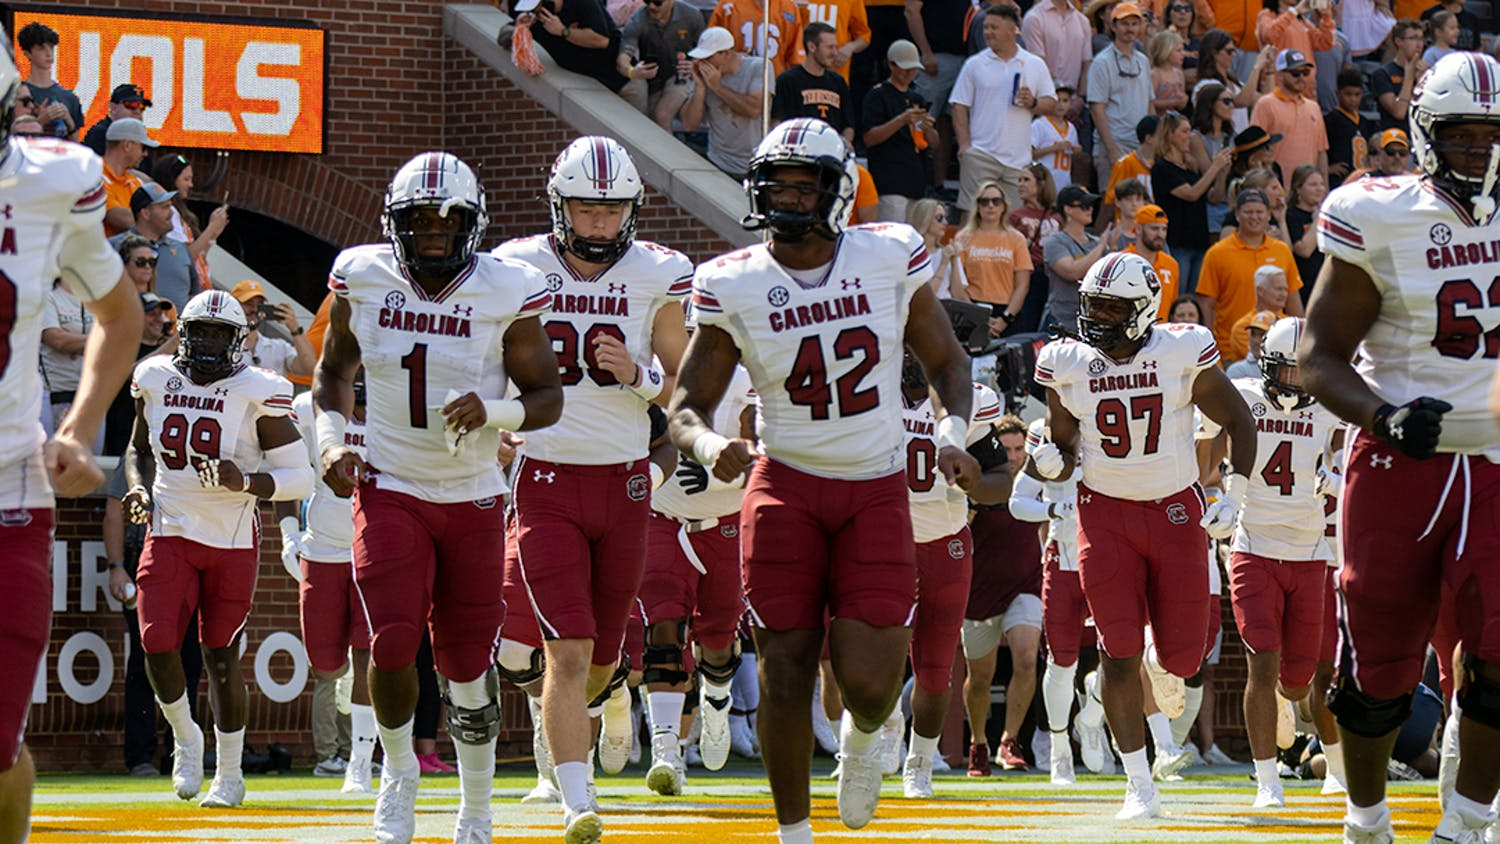 The Gamecocks run out onto the field of Neyland Stadium before facing off the Volunteers on Oct. 9, 2021.